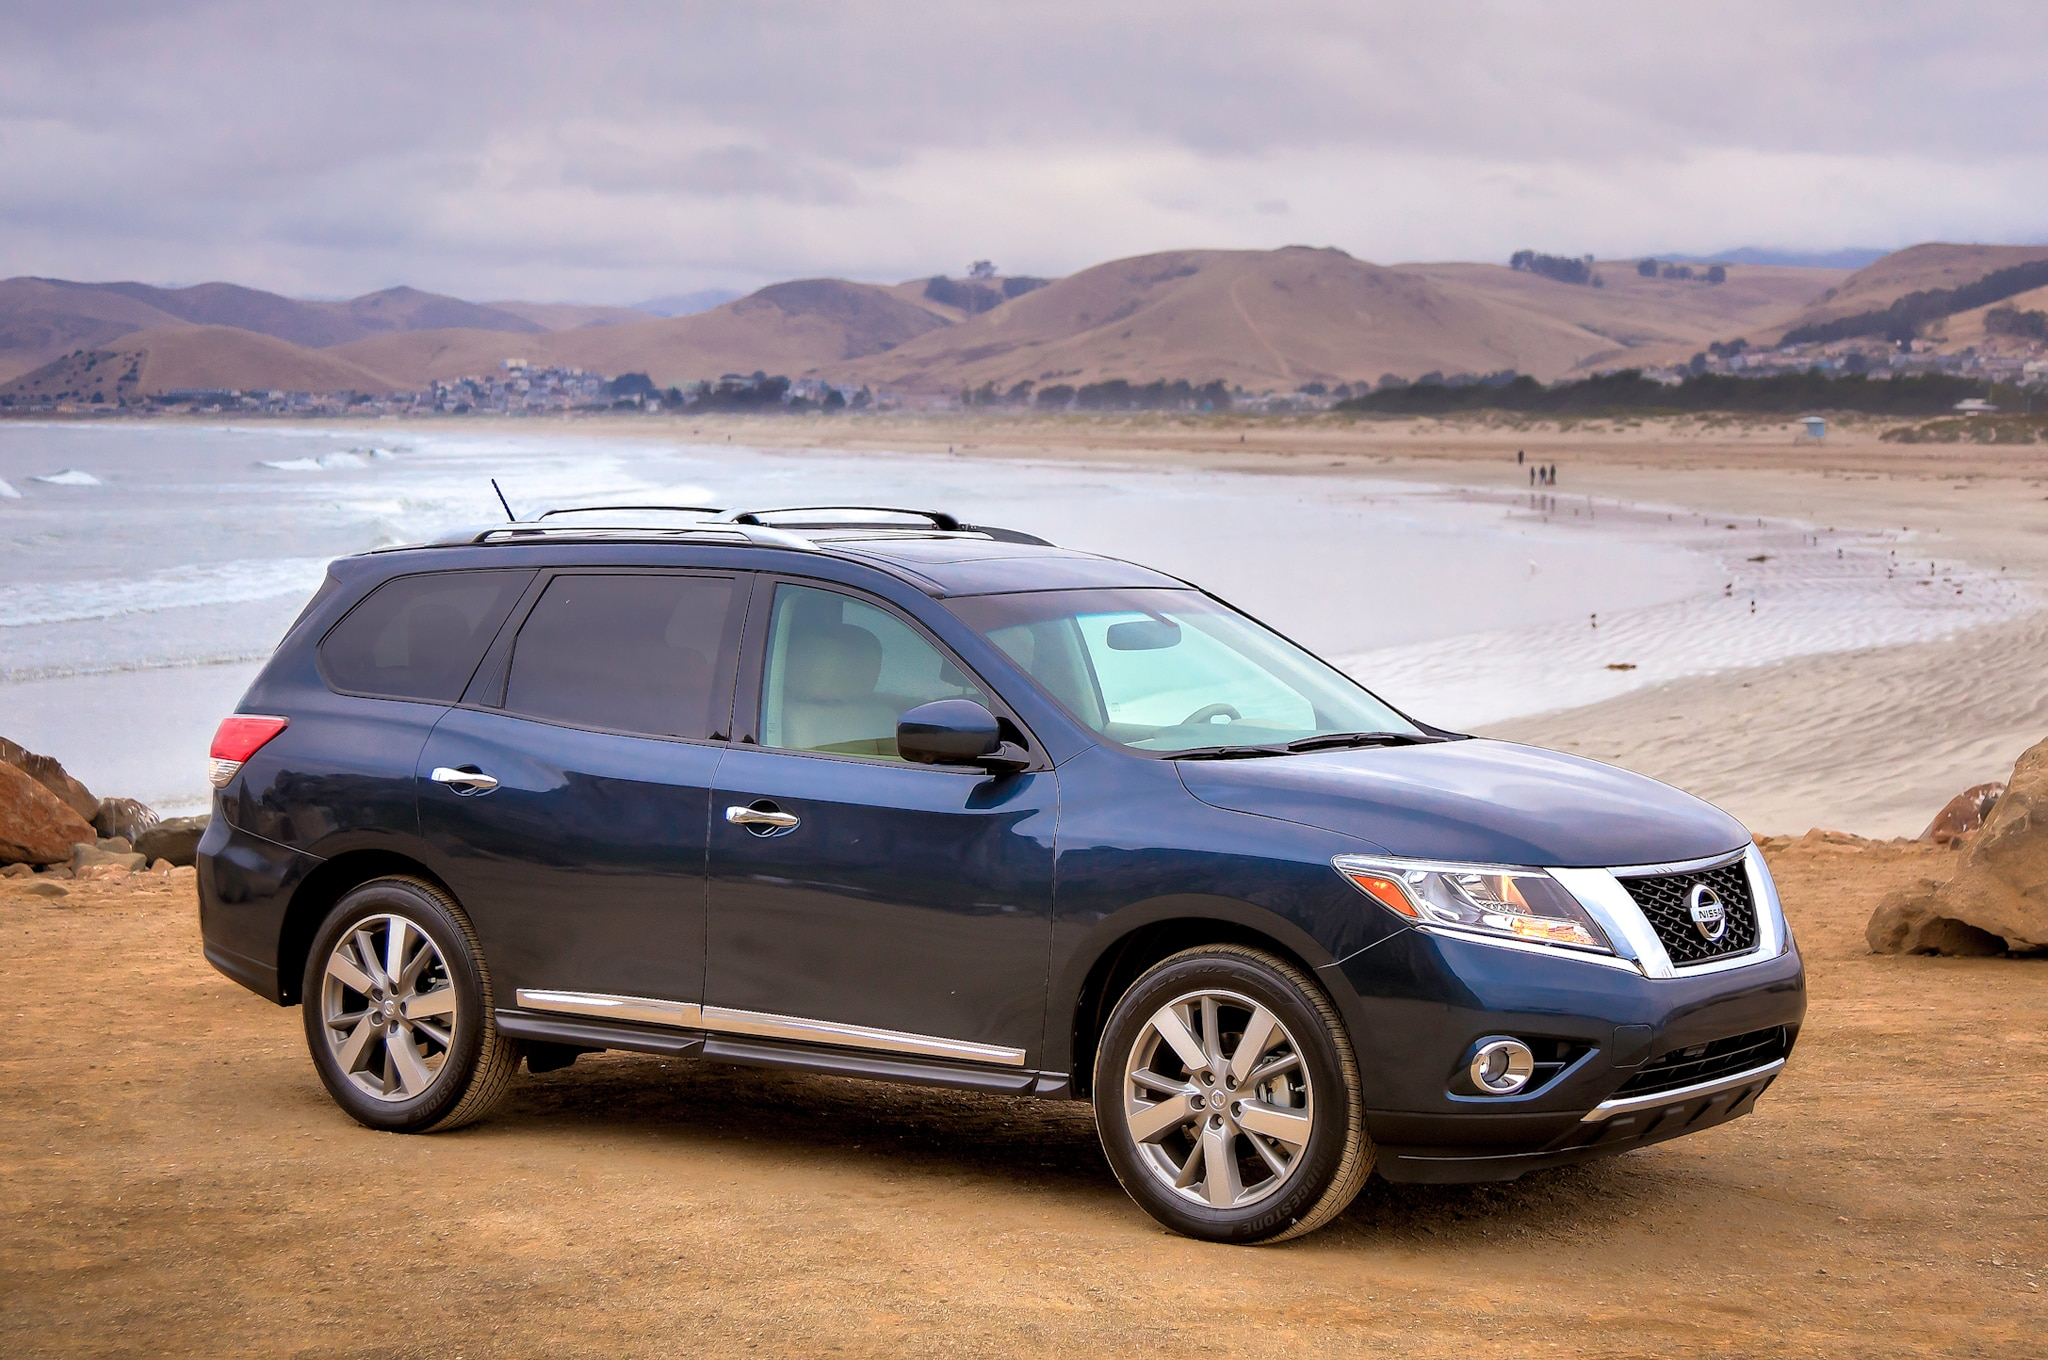 20132014 nissan and infiniti vehicles recalled